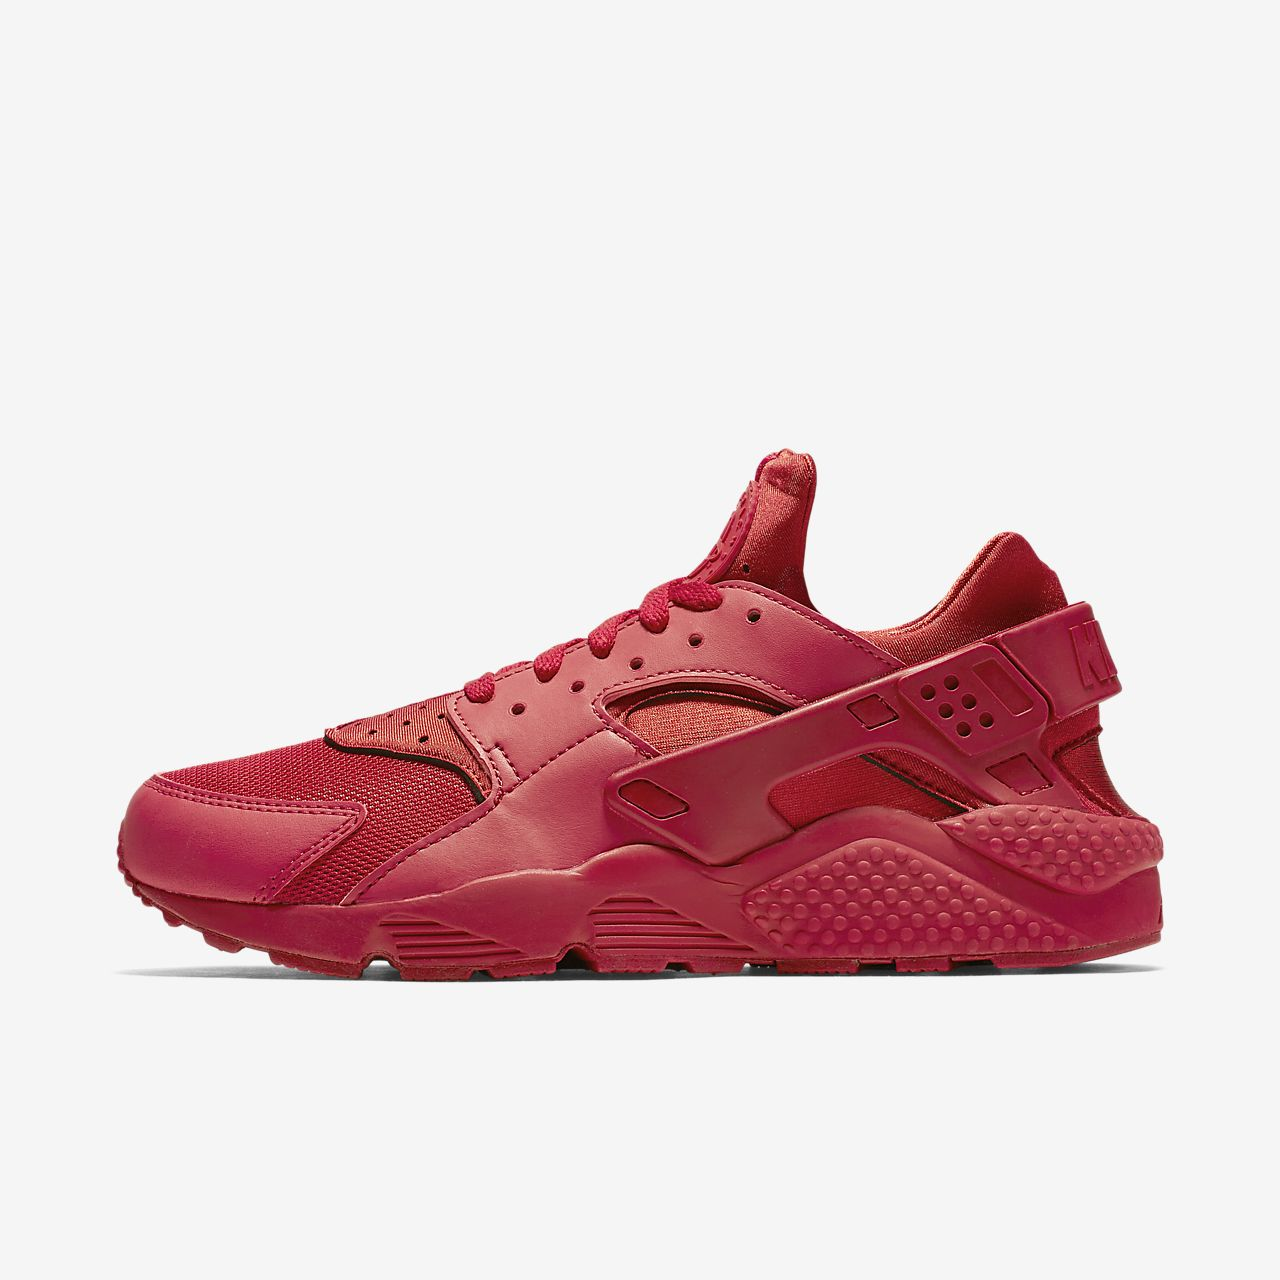 new product 05c4a 423ab ... Nike Air Huarache Men s Shoe